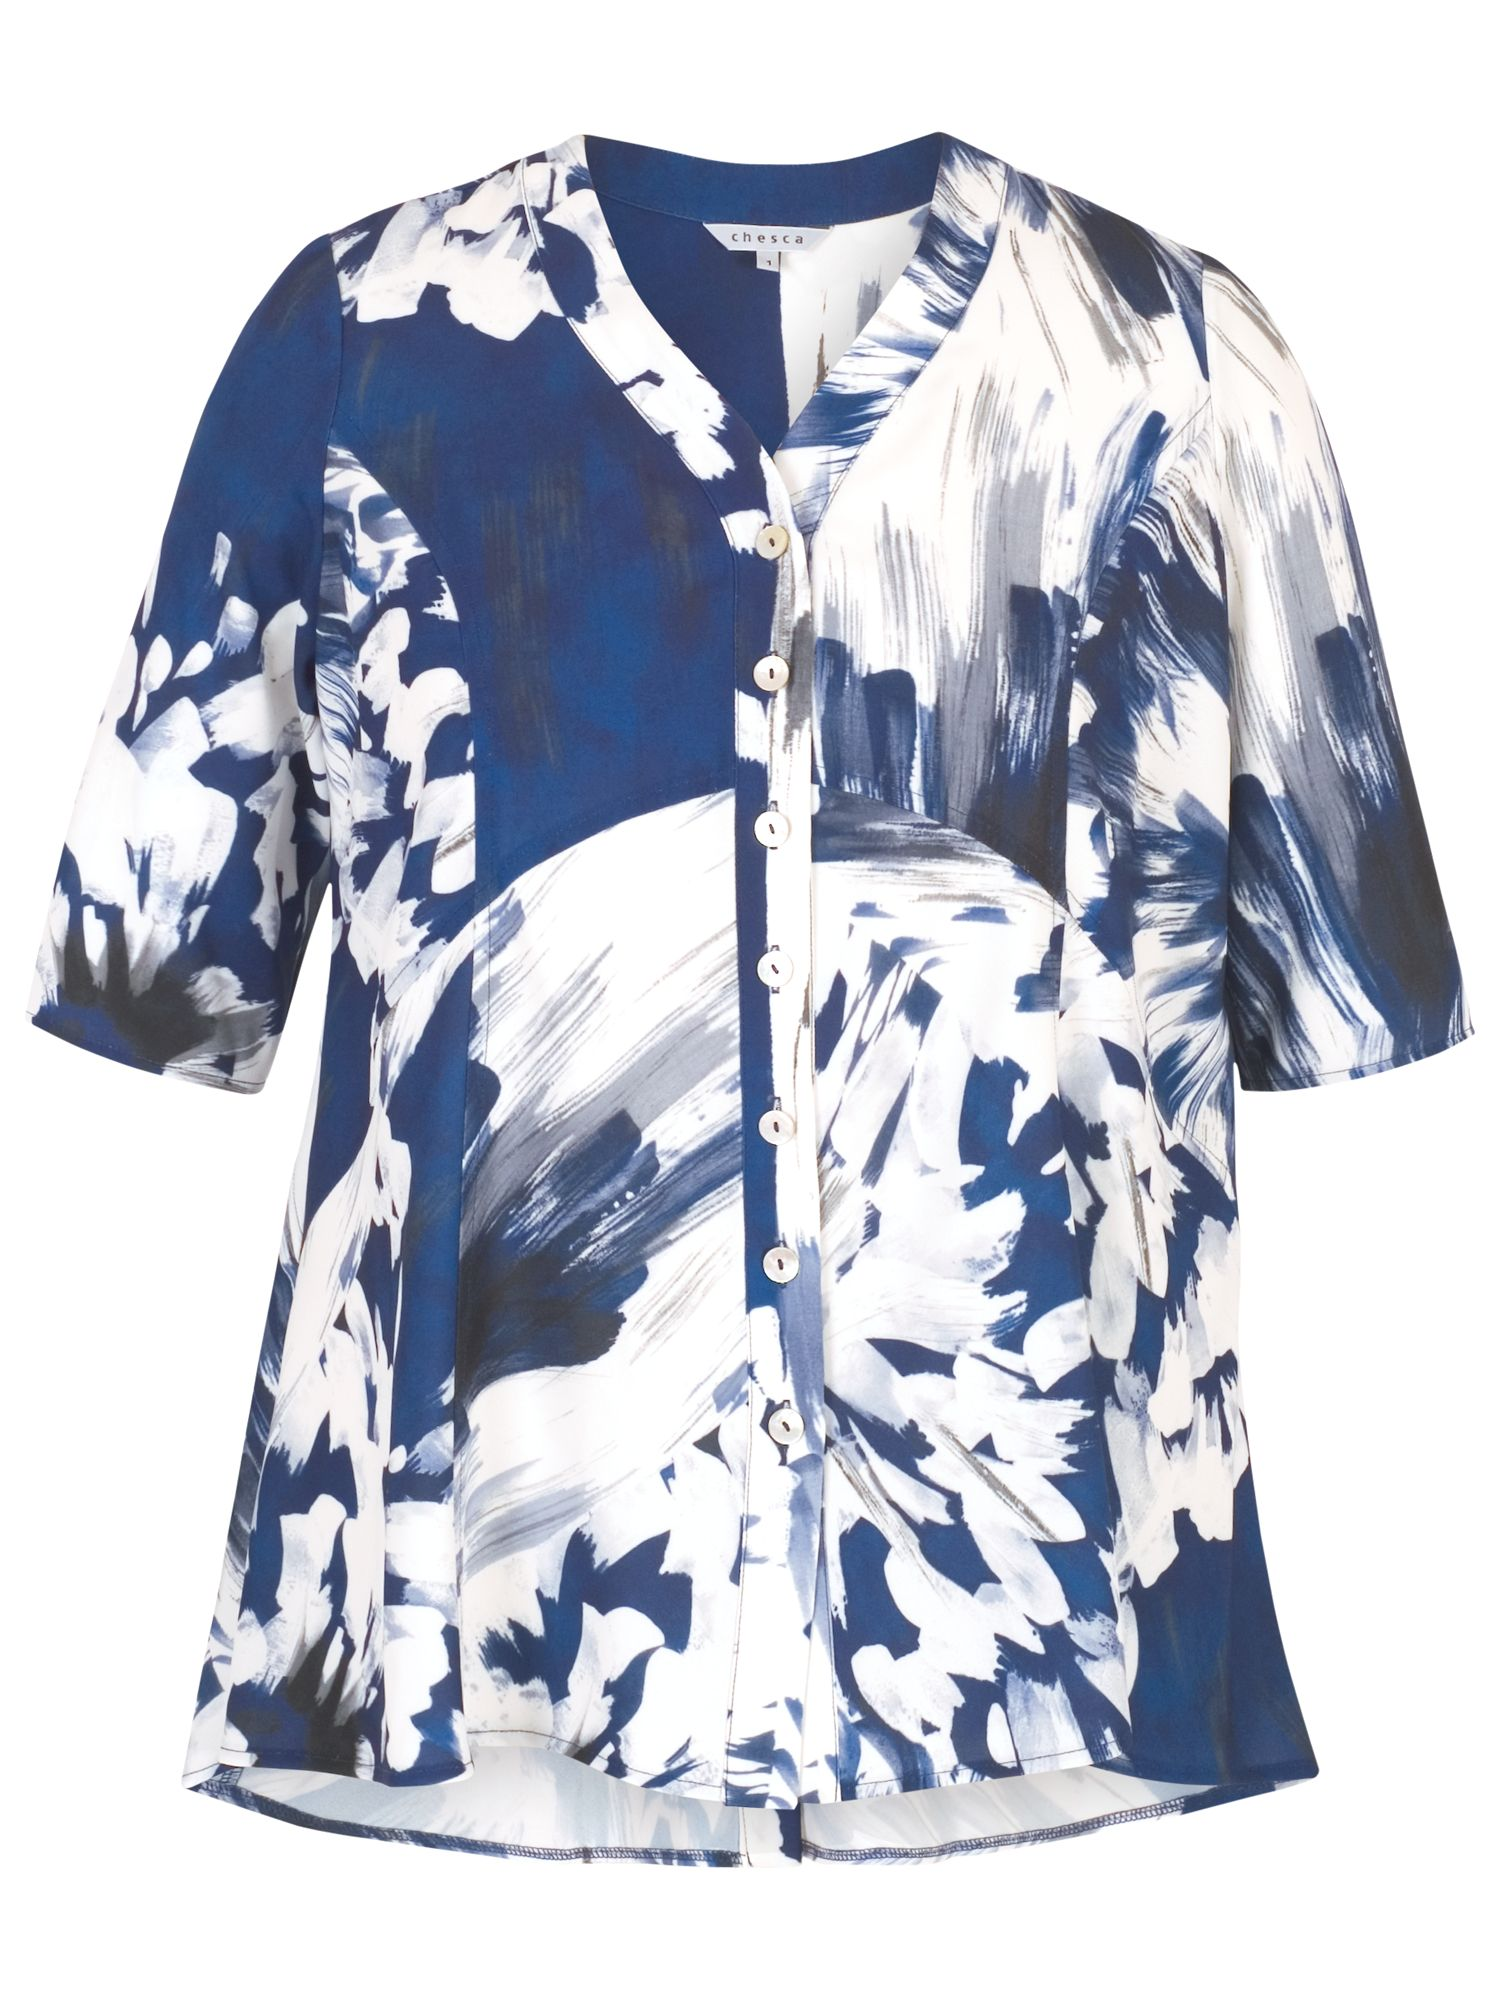 Chesca Chesca Abstract Block Flower Print Jacket, Blue/White